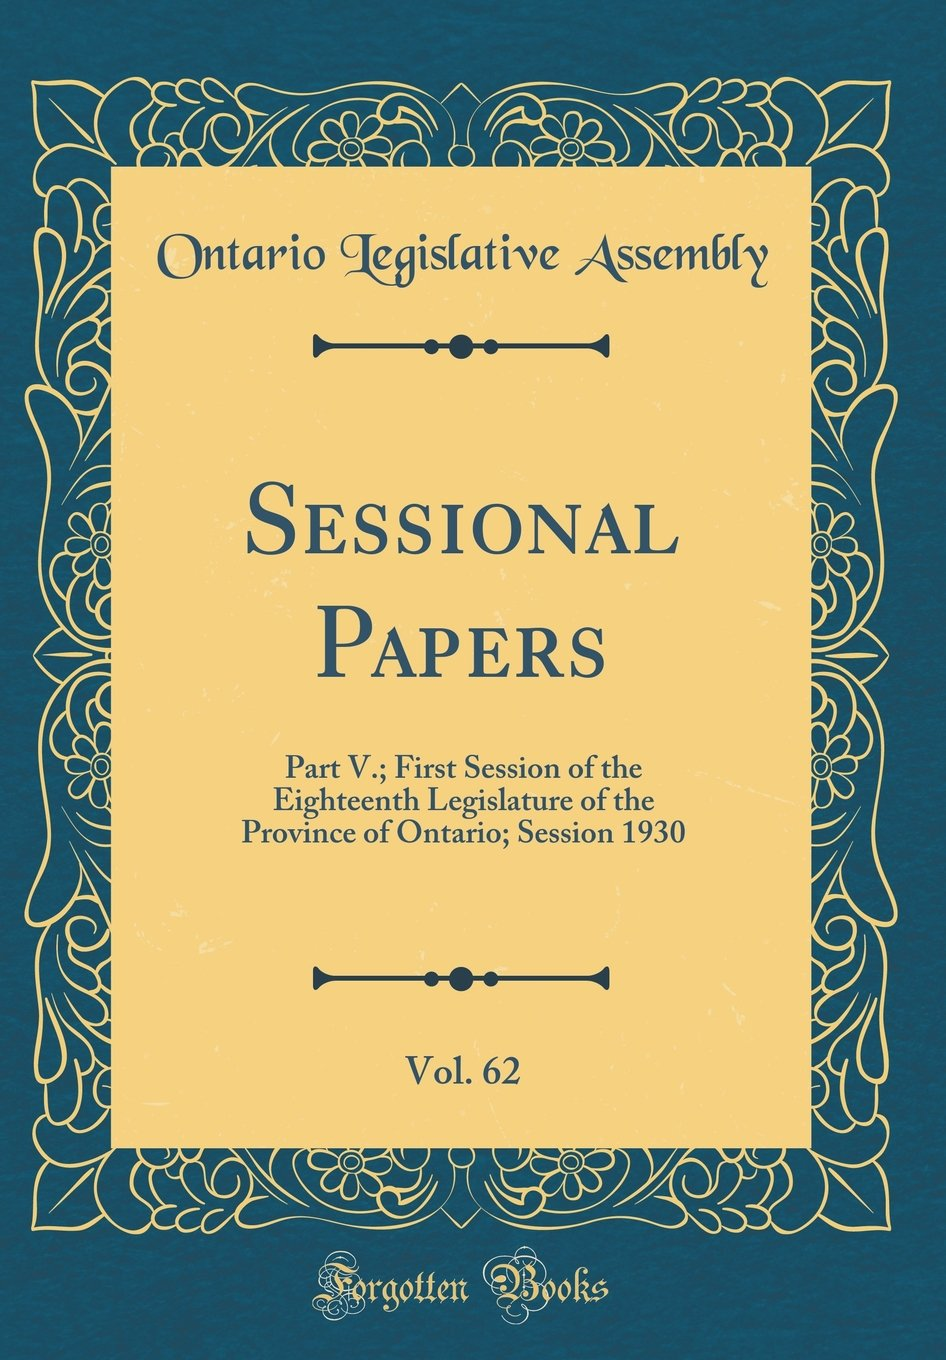 Sessional Papers, Vol. 62: Part V.; First Session of the Eighteenth Legislature of the Province of Ontario; Session 1930 (Classic Reprint) pdf